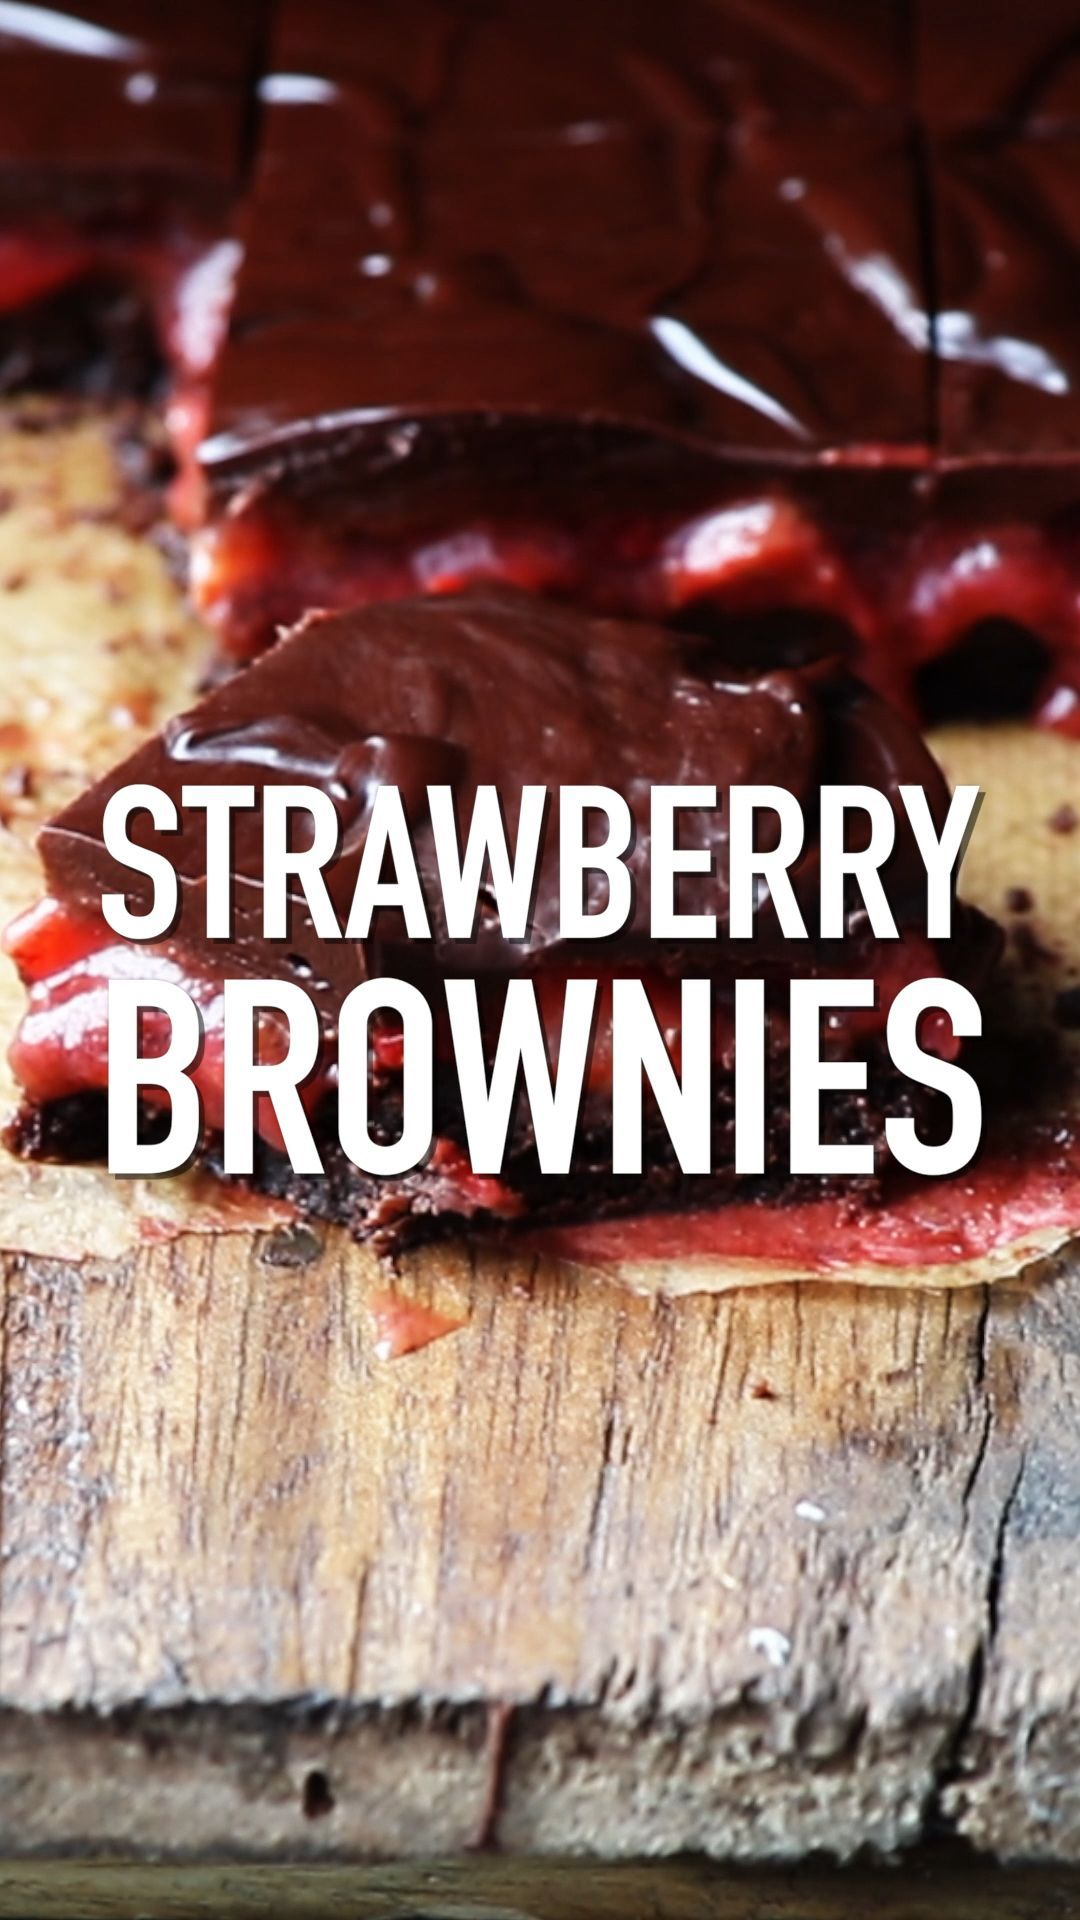 These Strawberry Brownies are a combination of super fudgy brownies topped with homemade strawberry